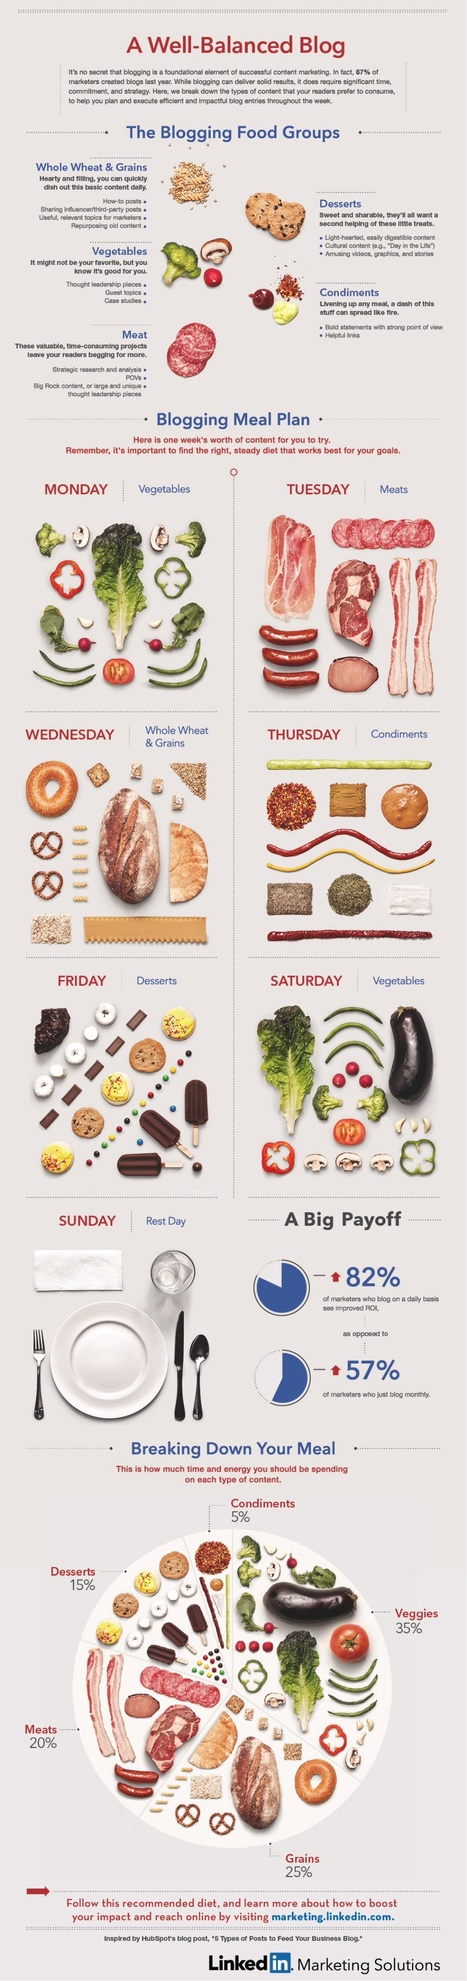 How Not to Be a Boring Blogger: Write Like You Eat (Infographic)   MarketingHits   Scoop.it